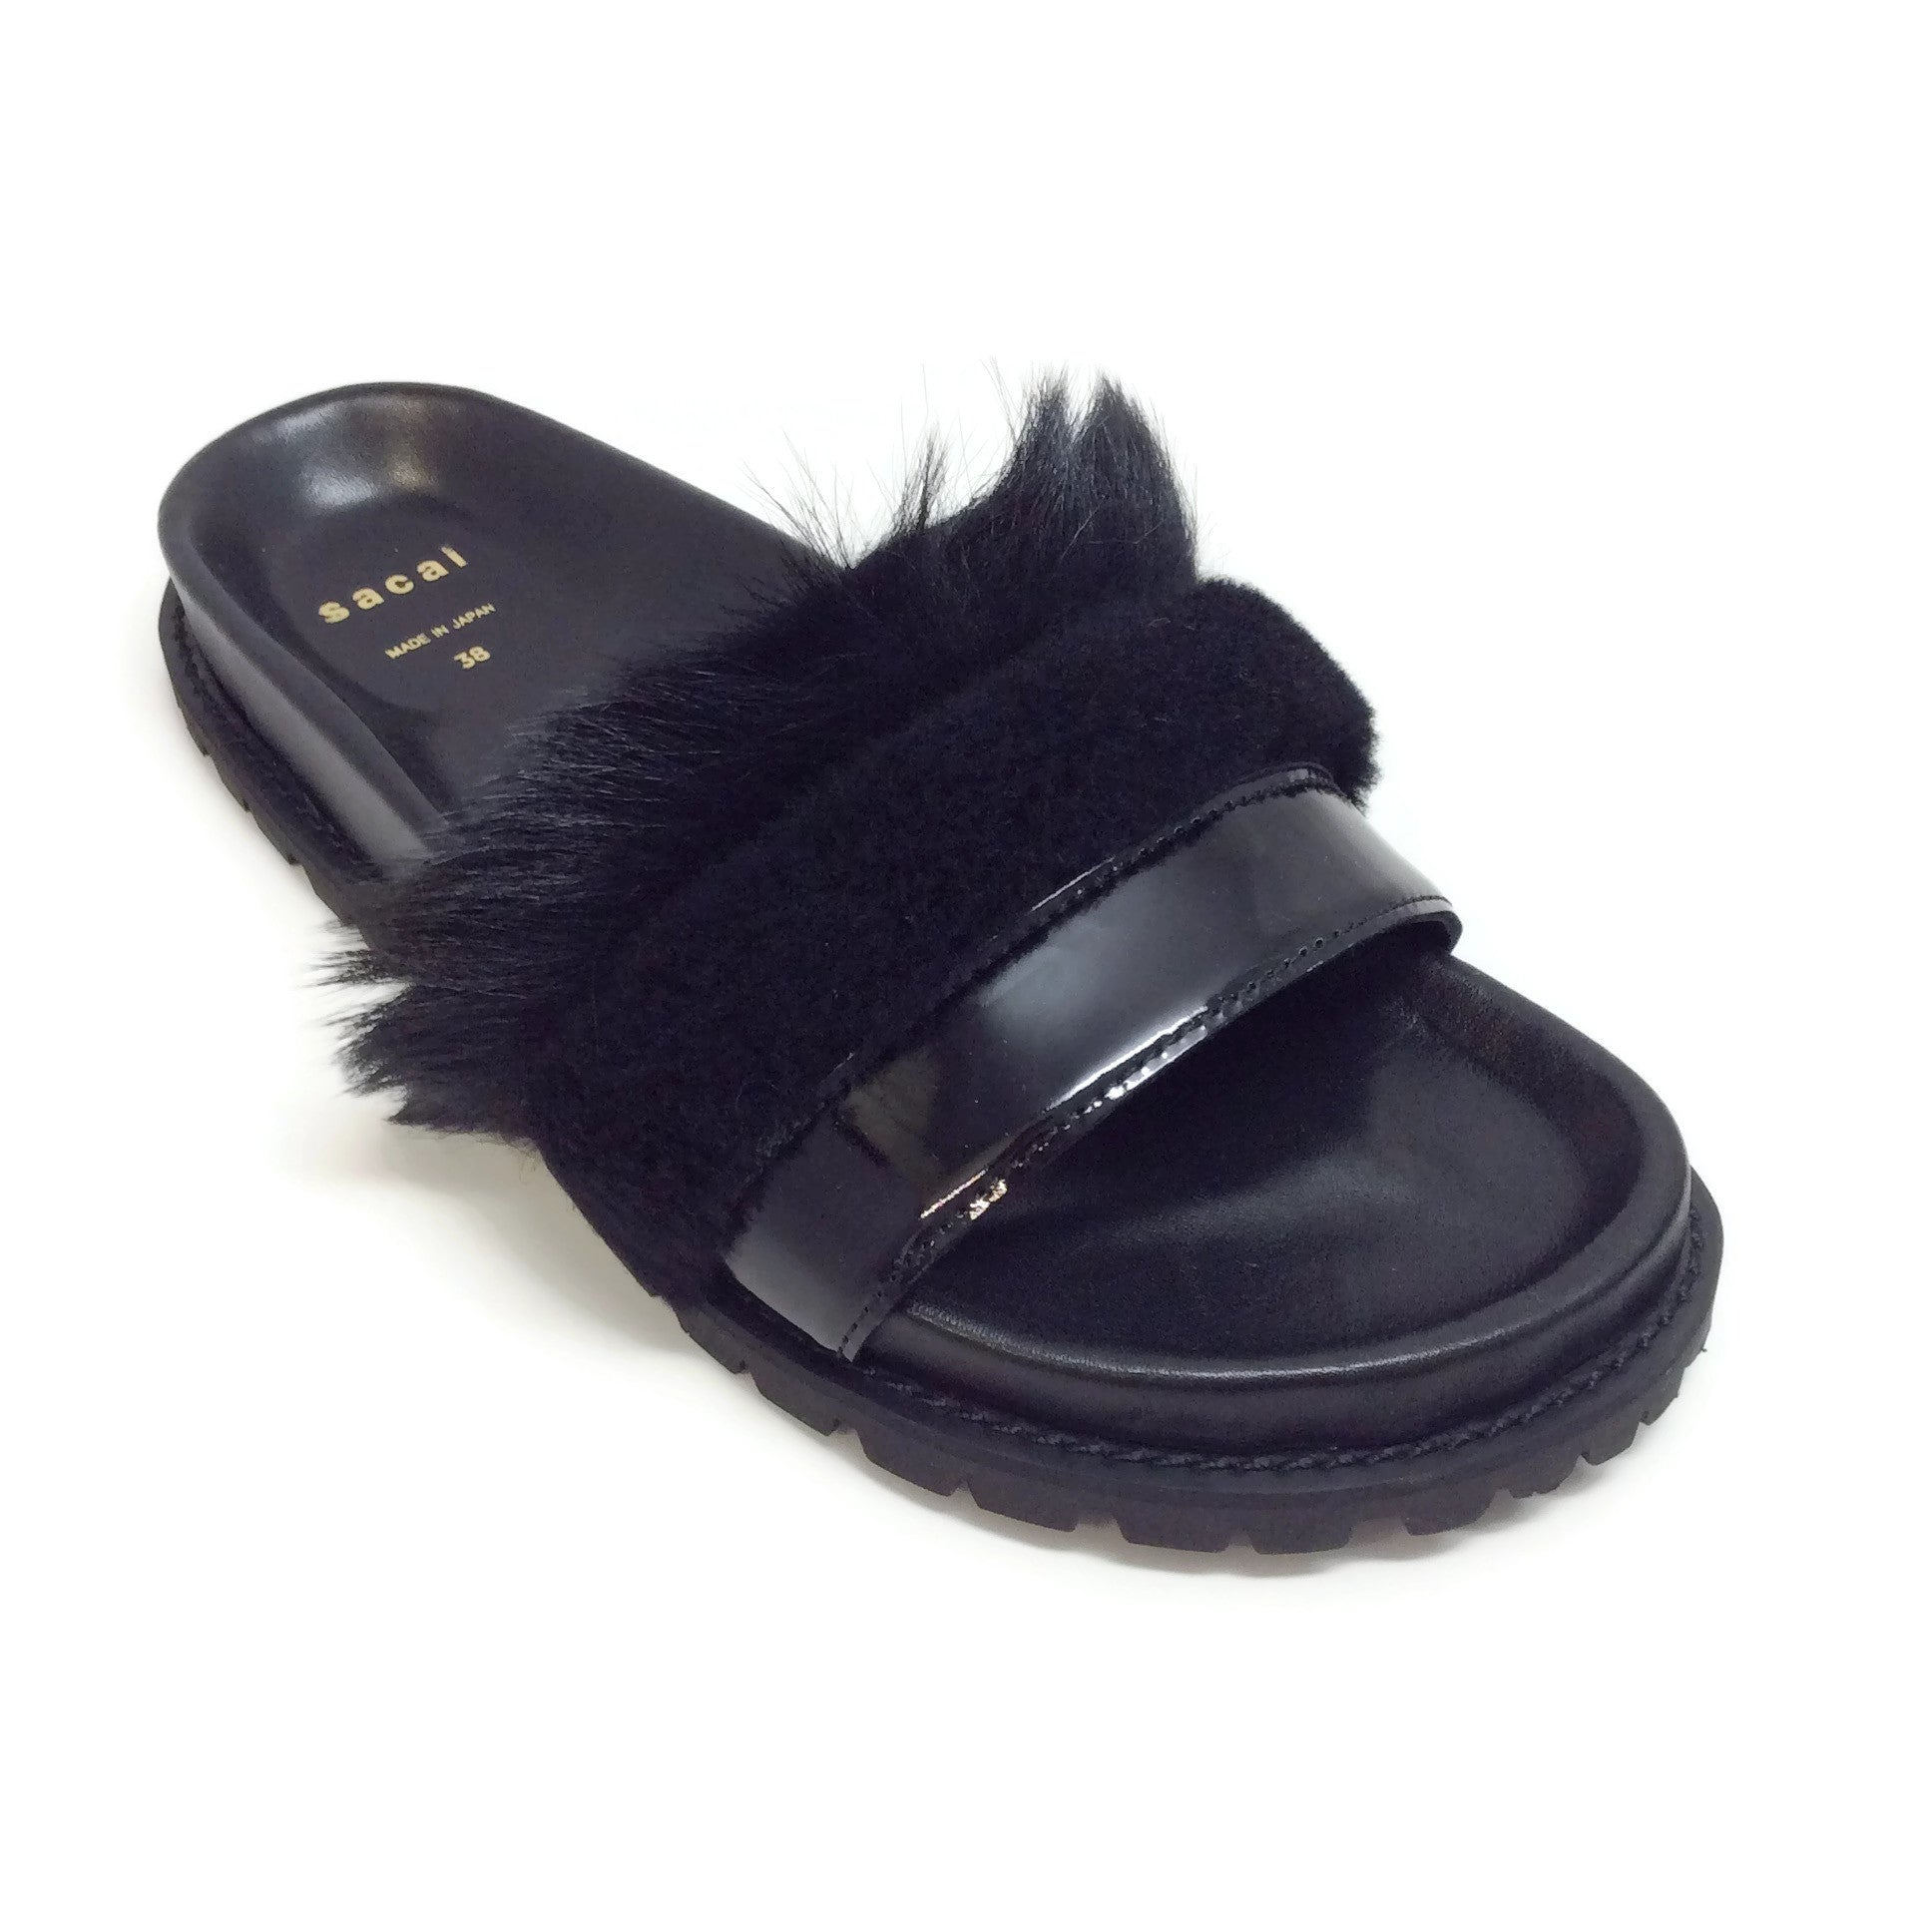 sacai Black Lamb Fur Slides